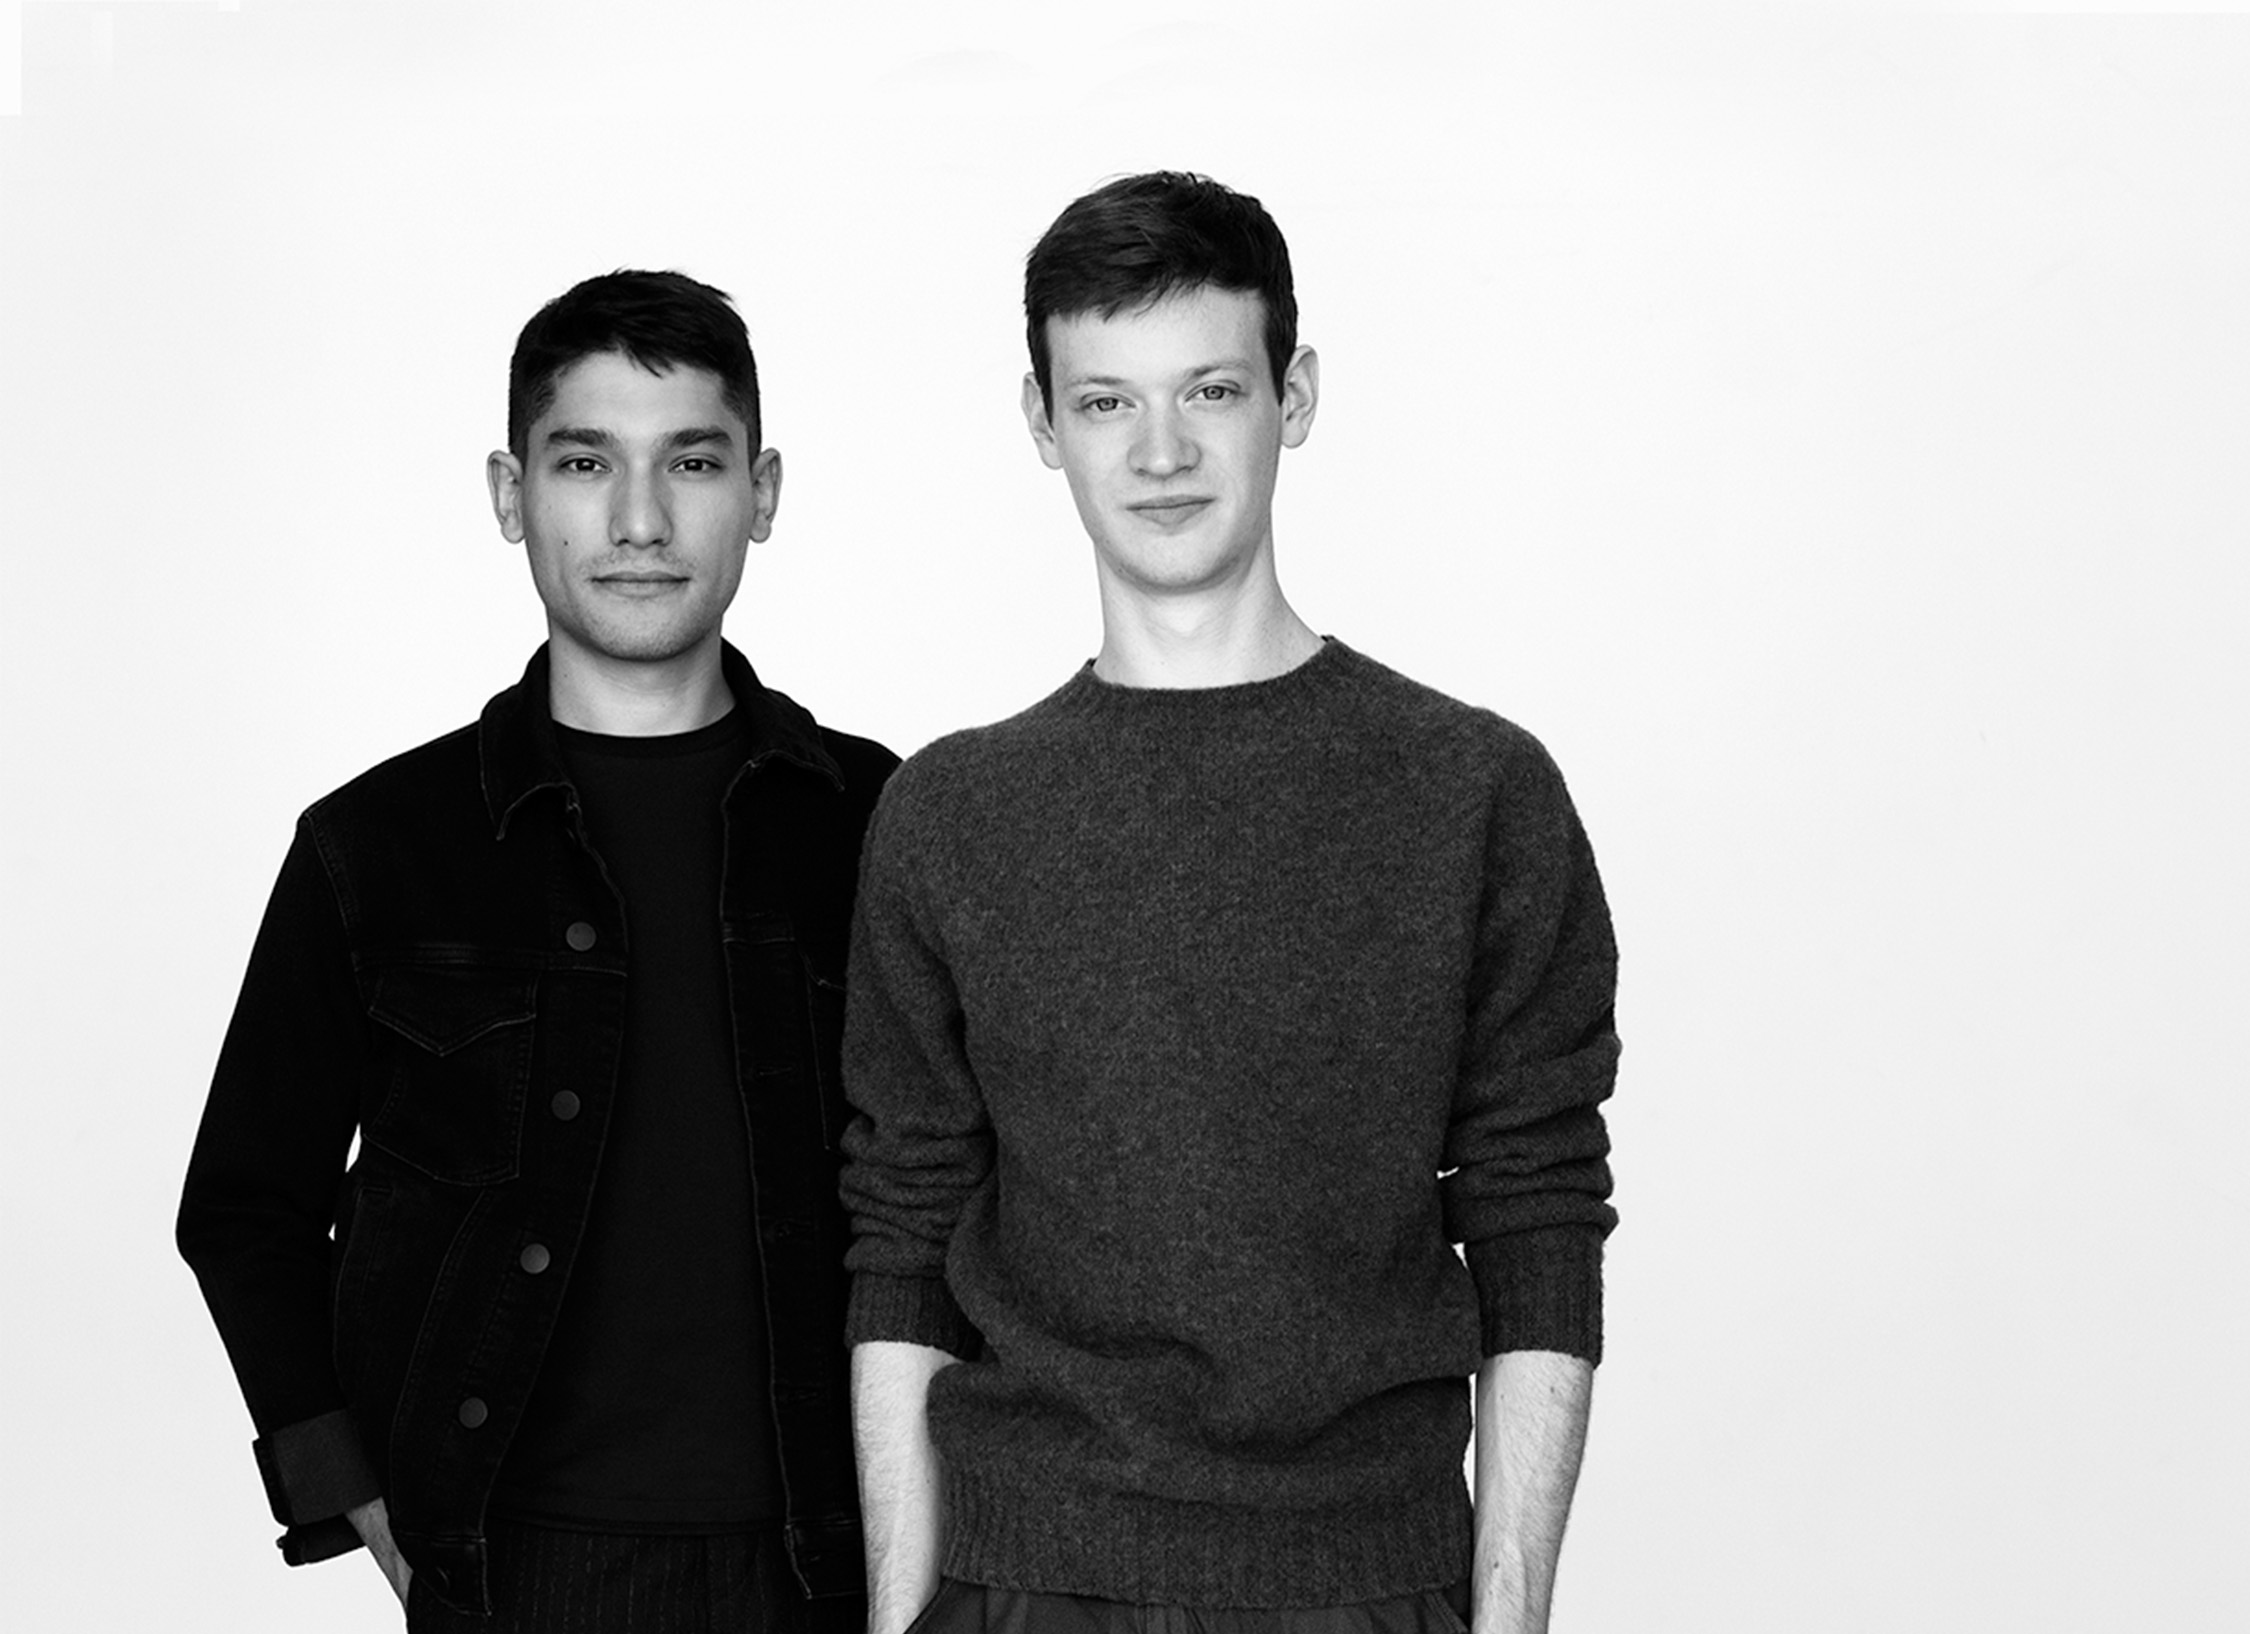 Trueing duo Aiden Bowman (left) and Josh Metersky launched the Cerina collection (above) at this year's NYCxDesign.